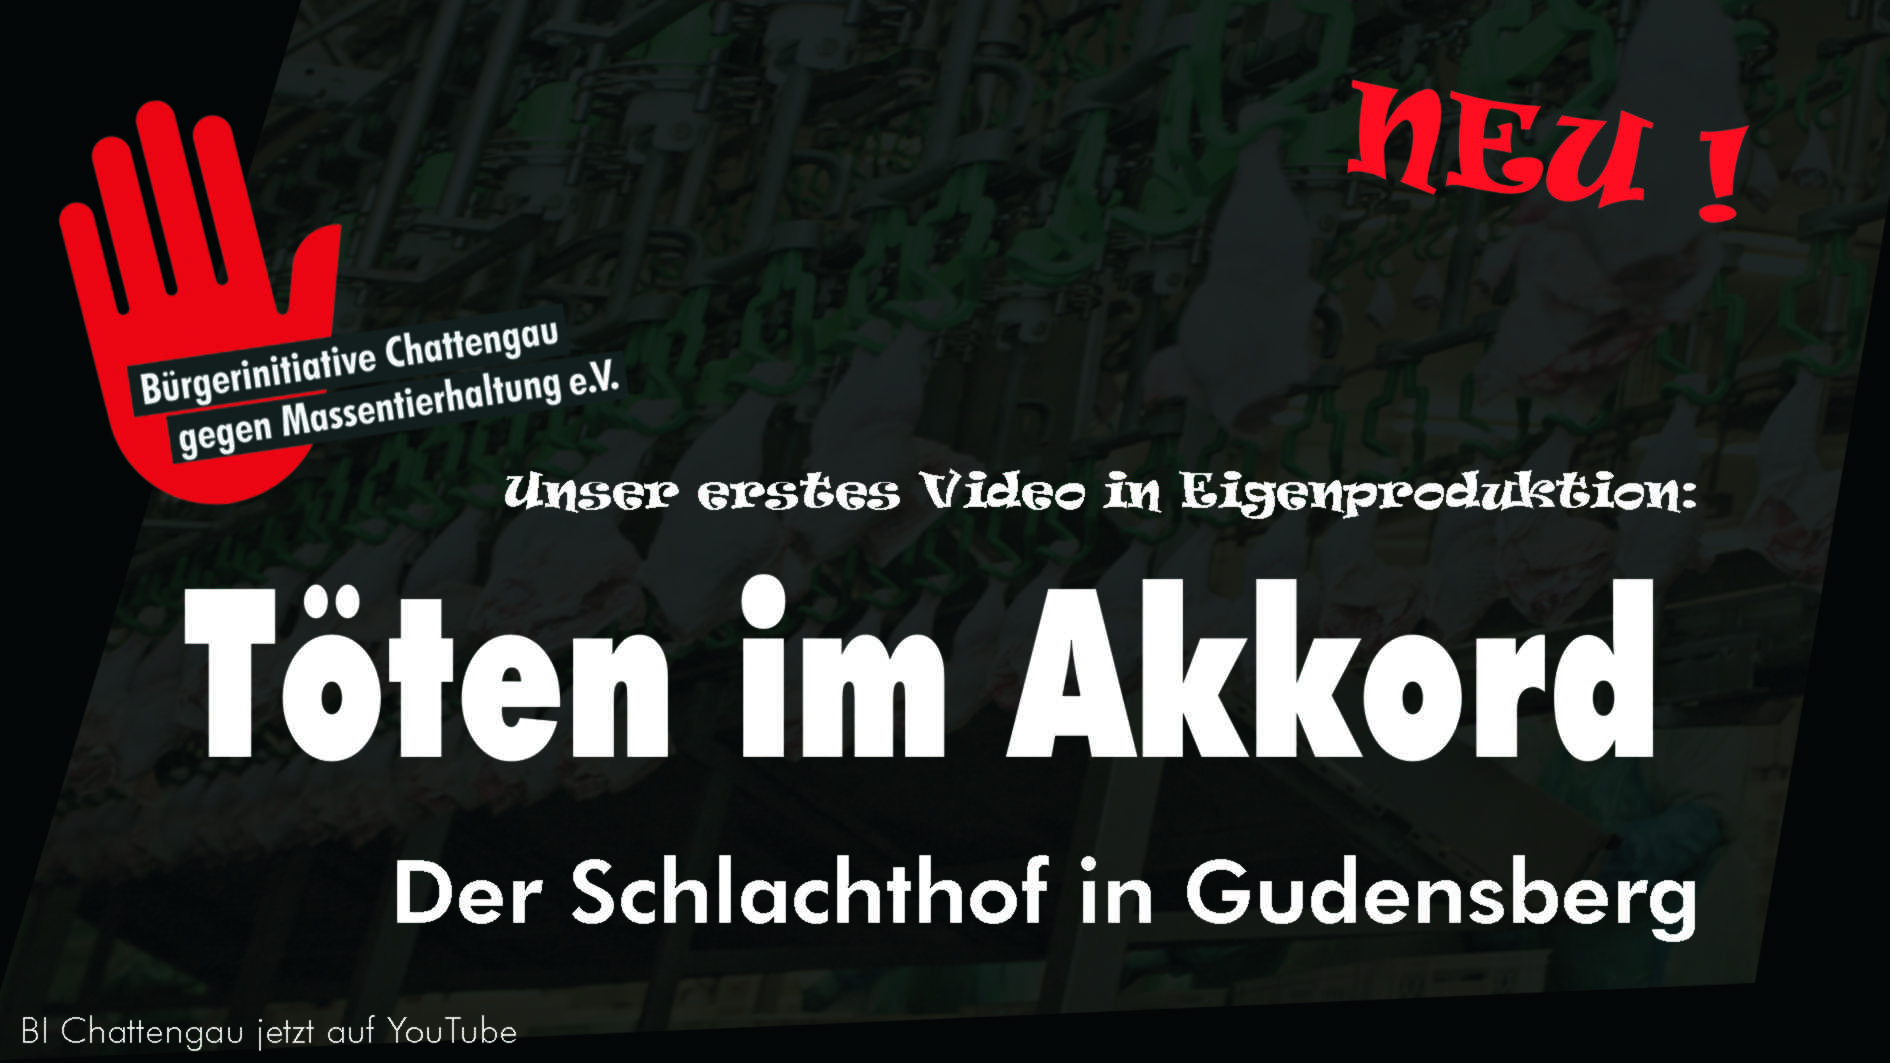 video-ankündigung-FB-kl